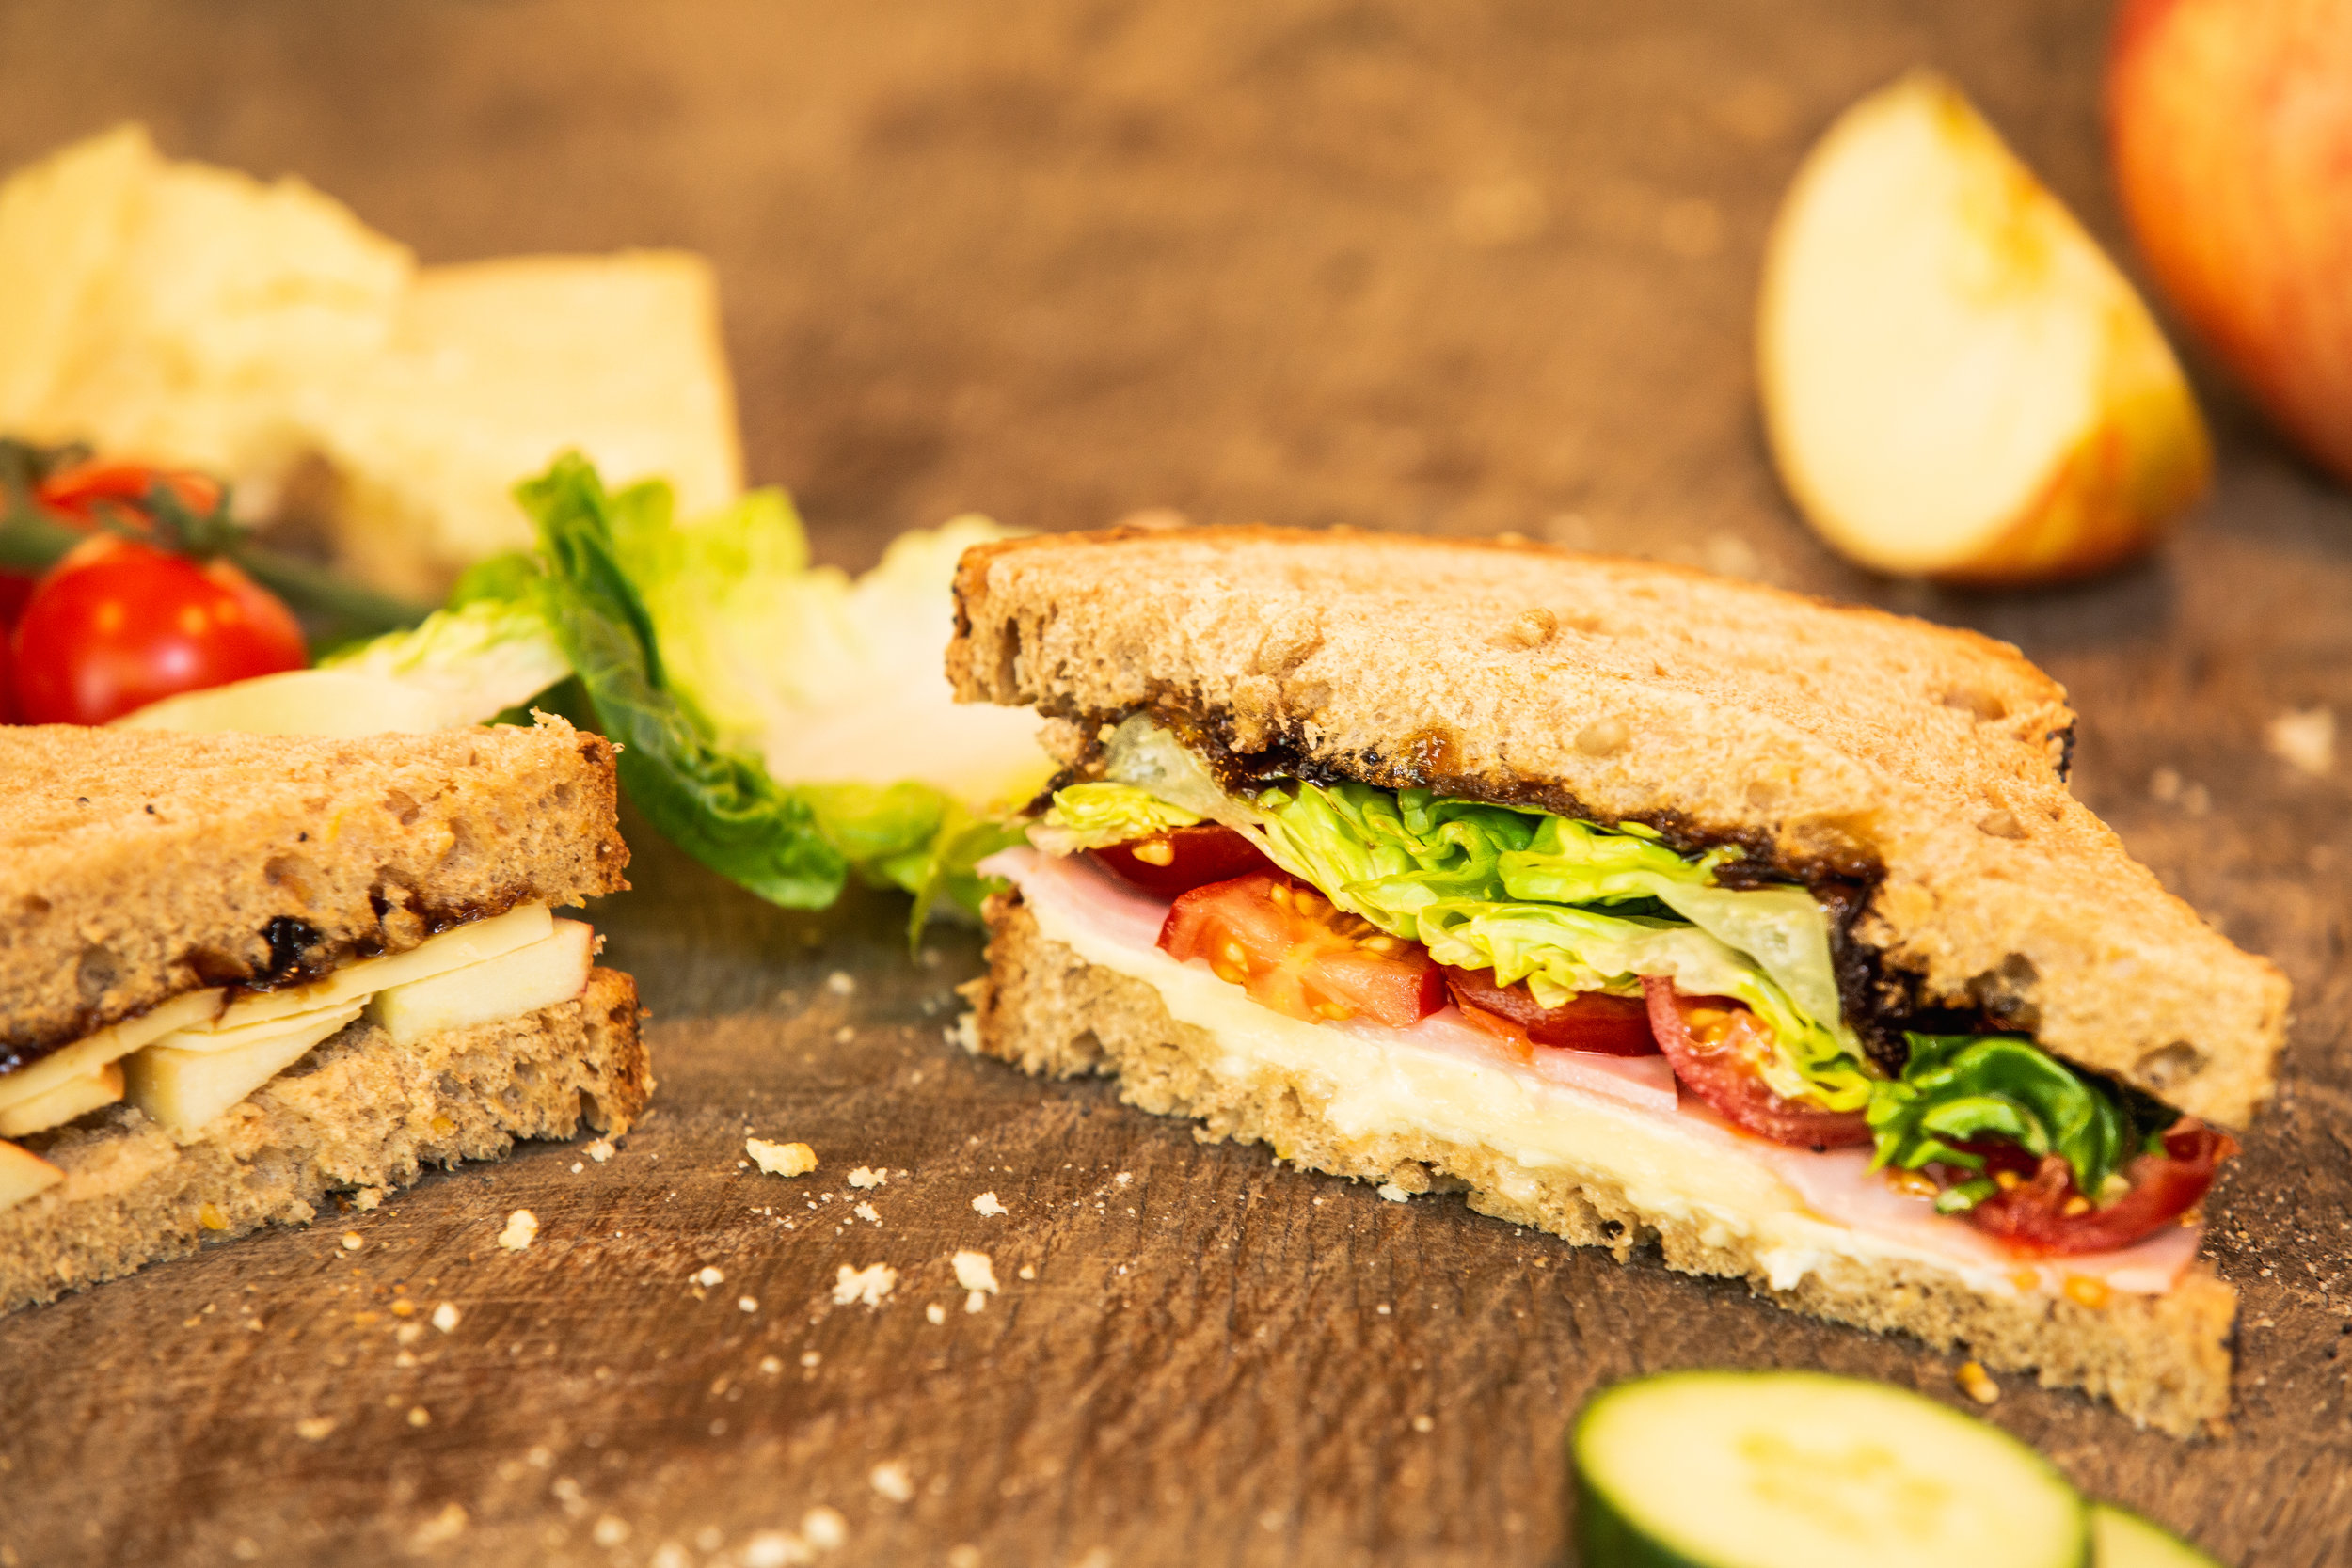 We have a range of sandwiches freshly made on site each day. This one is a Ploughman's with English cheddar cheese, ham and Tracklement's fabulous onion marmalade.